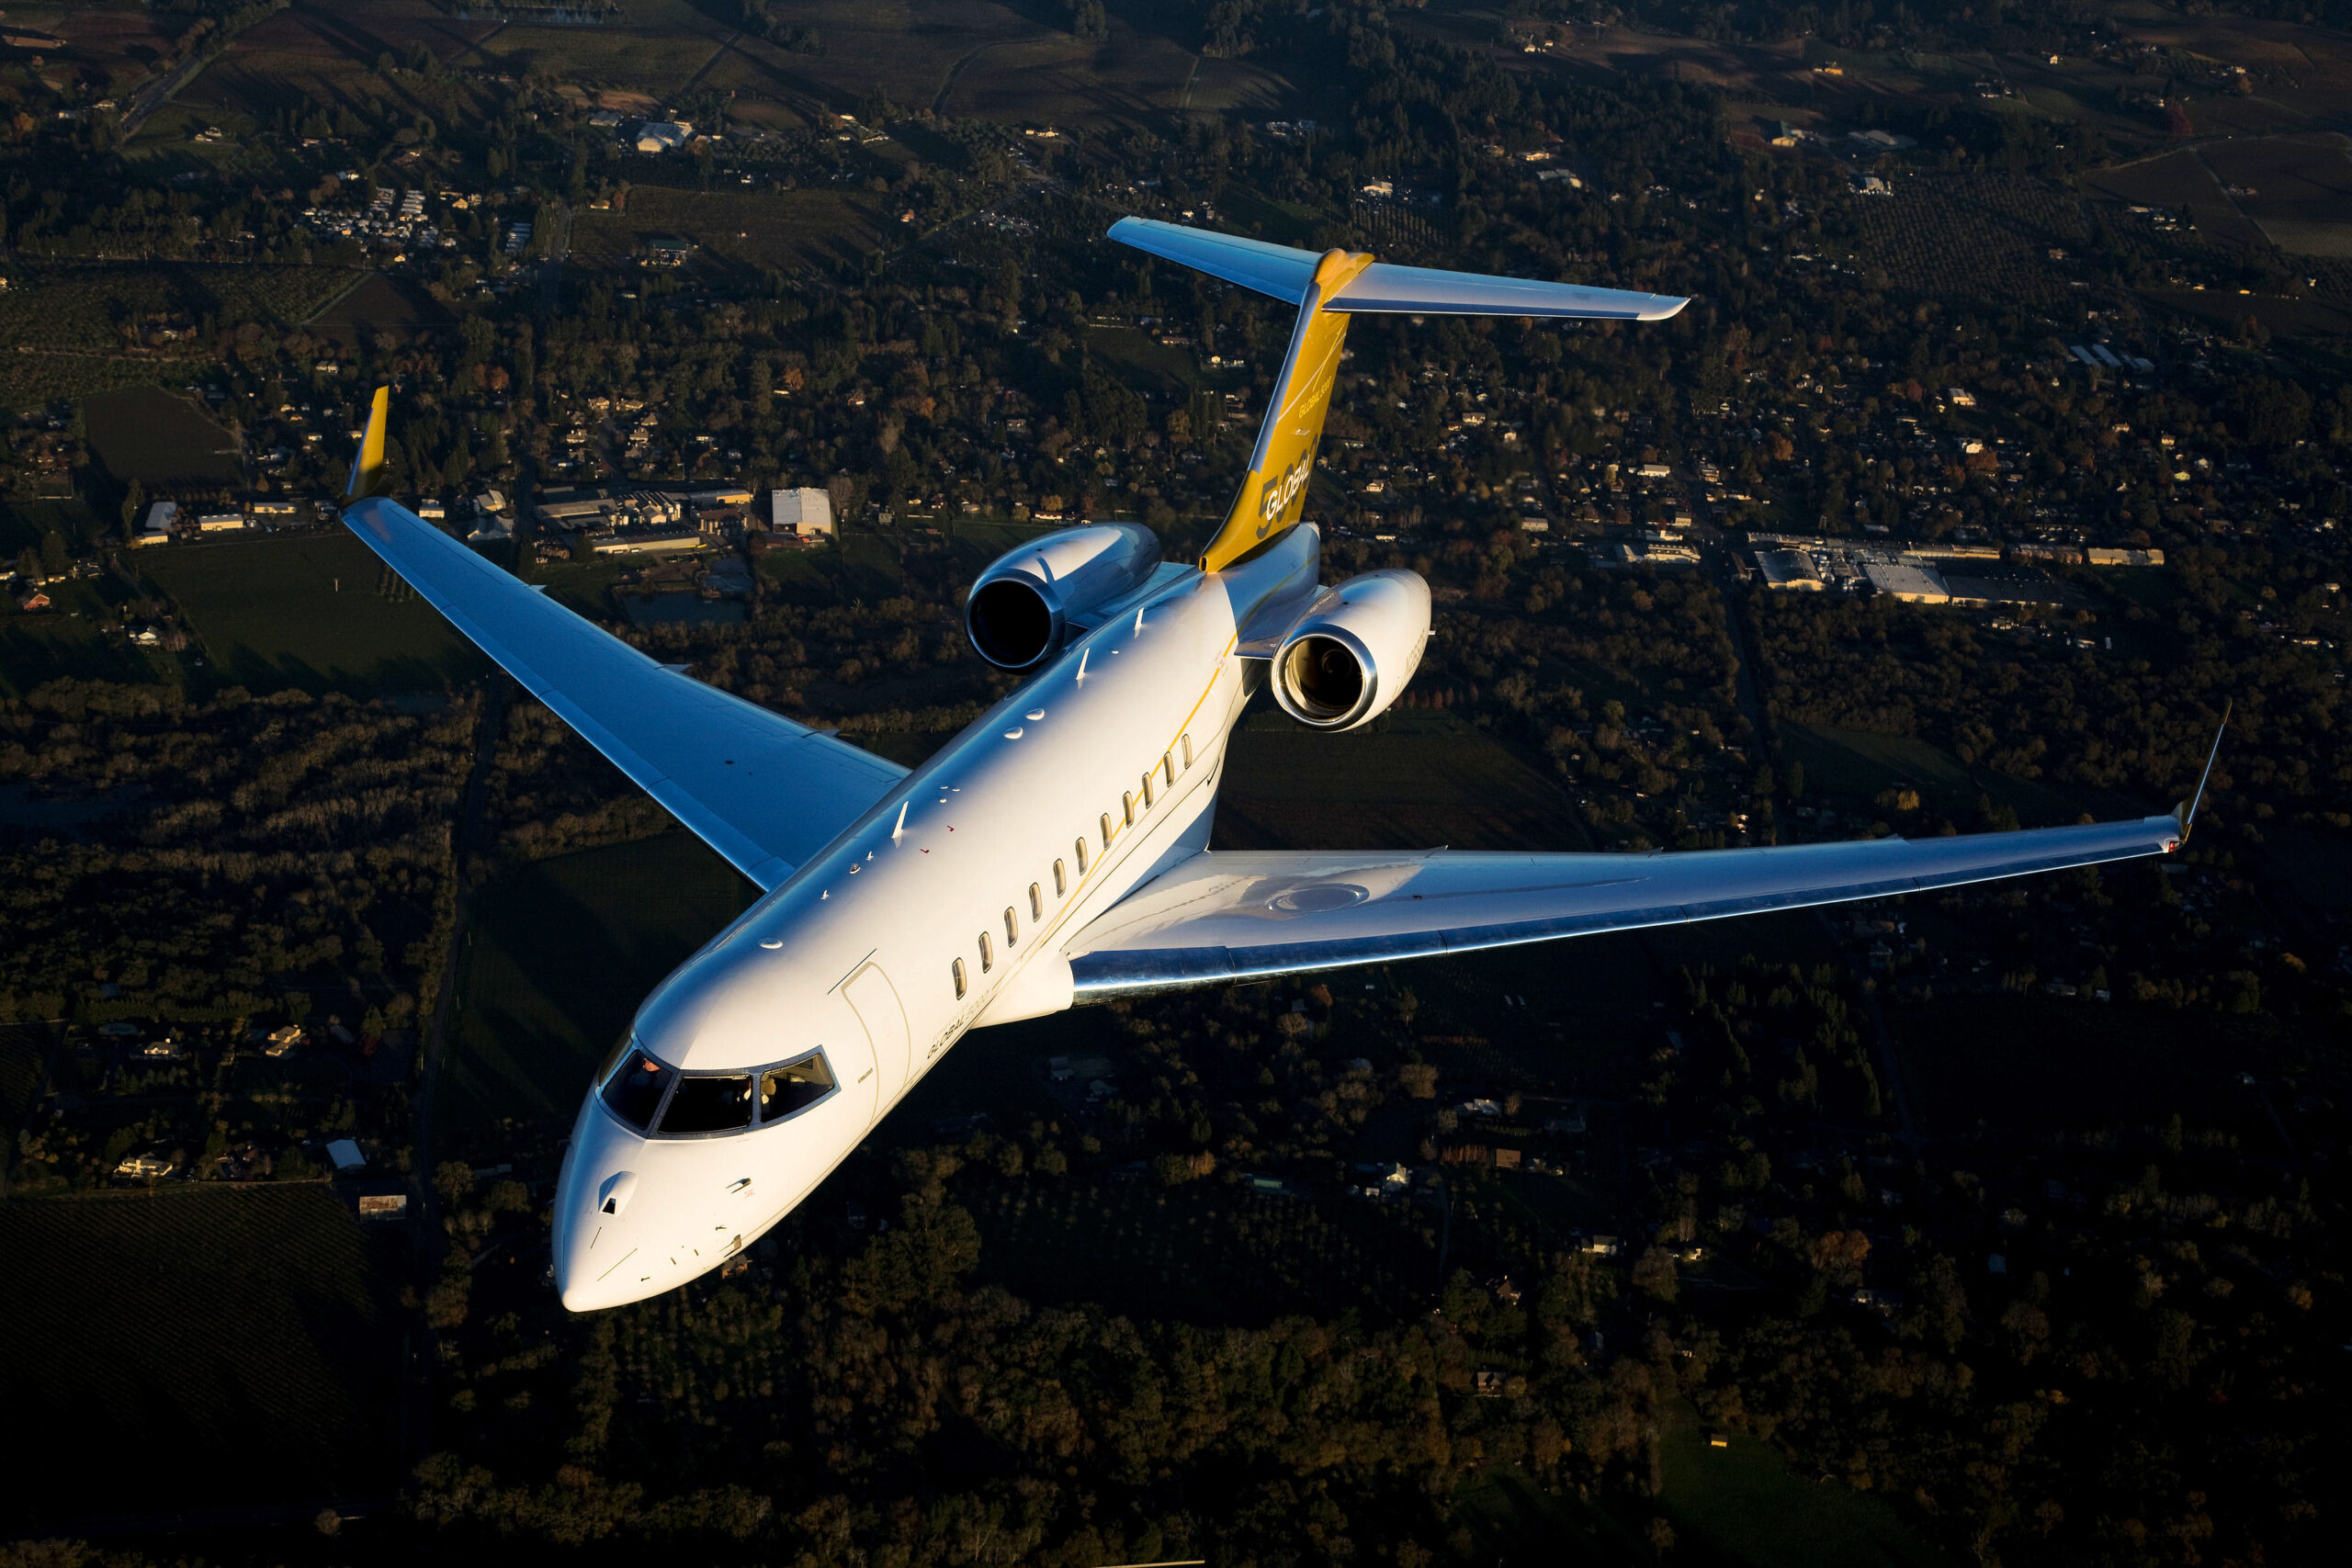 bombardier bd 700 1a11 global scaled - Bombardier Global 5000